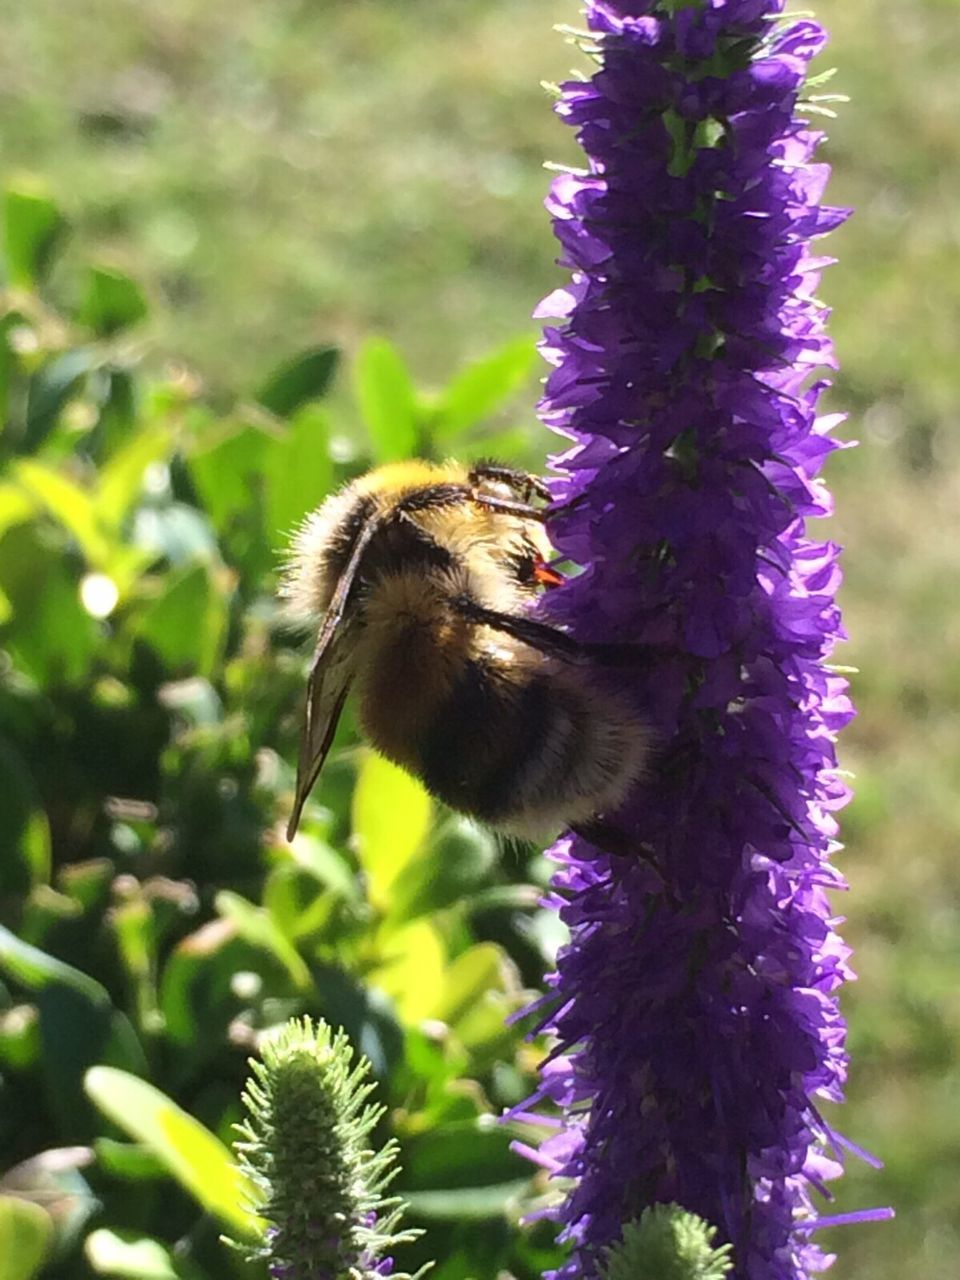 flower, purple, growth, nature, beauty in nature, fragility, animal themes, animals in the wild, bee, one animal, insect, freshness, no people, outdoors, pollination, day, focus on foreground, plant, petal, bumblebee, animal wildlife, blooming, close-up, buzzing, flower head